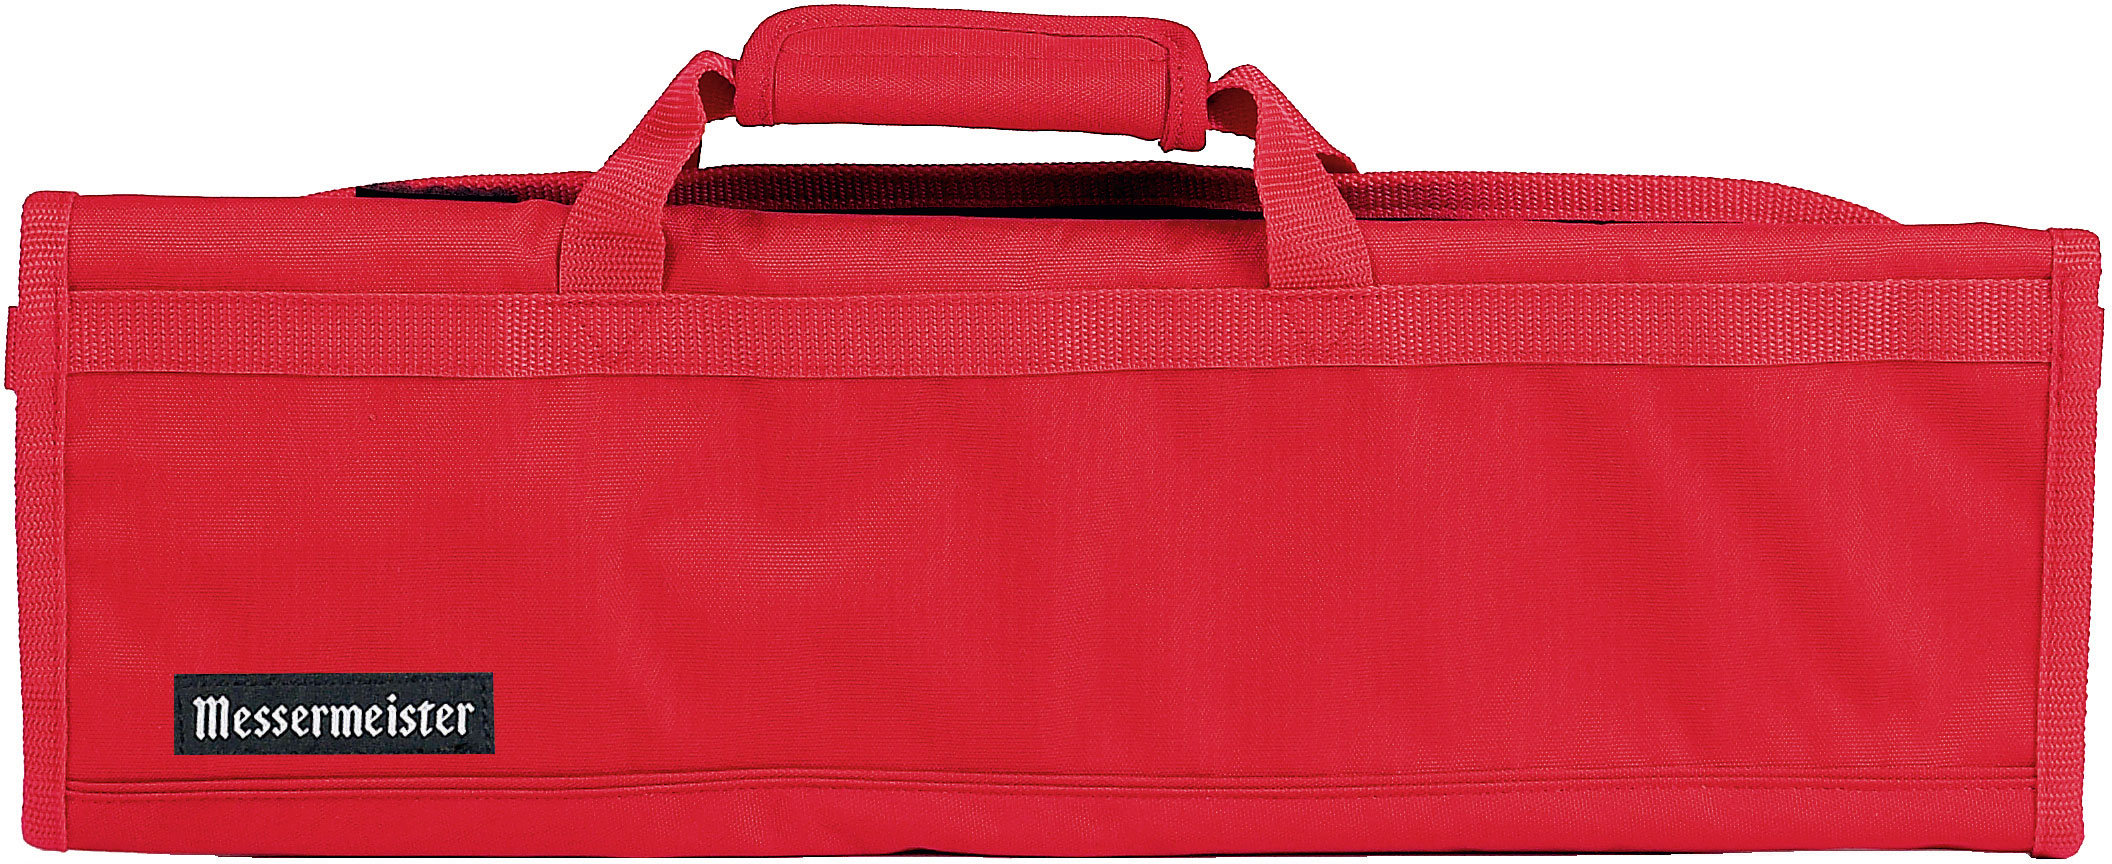 Messermeister 8 Pocket Red Knife Bag